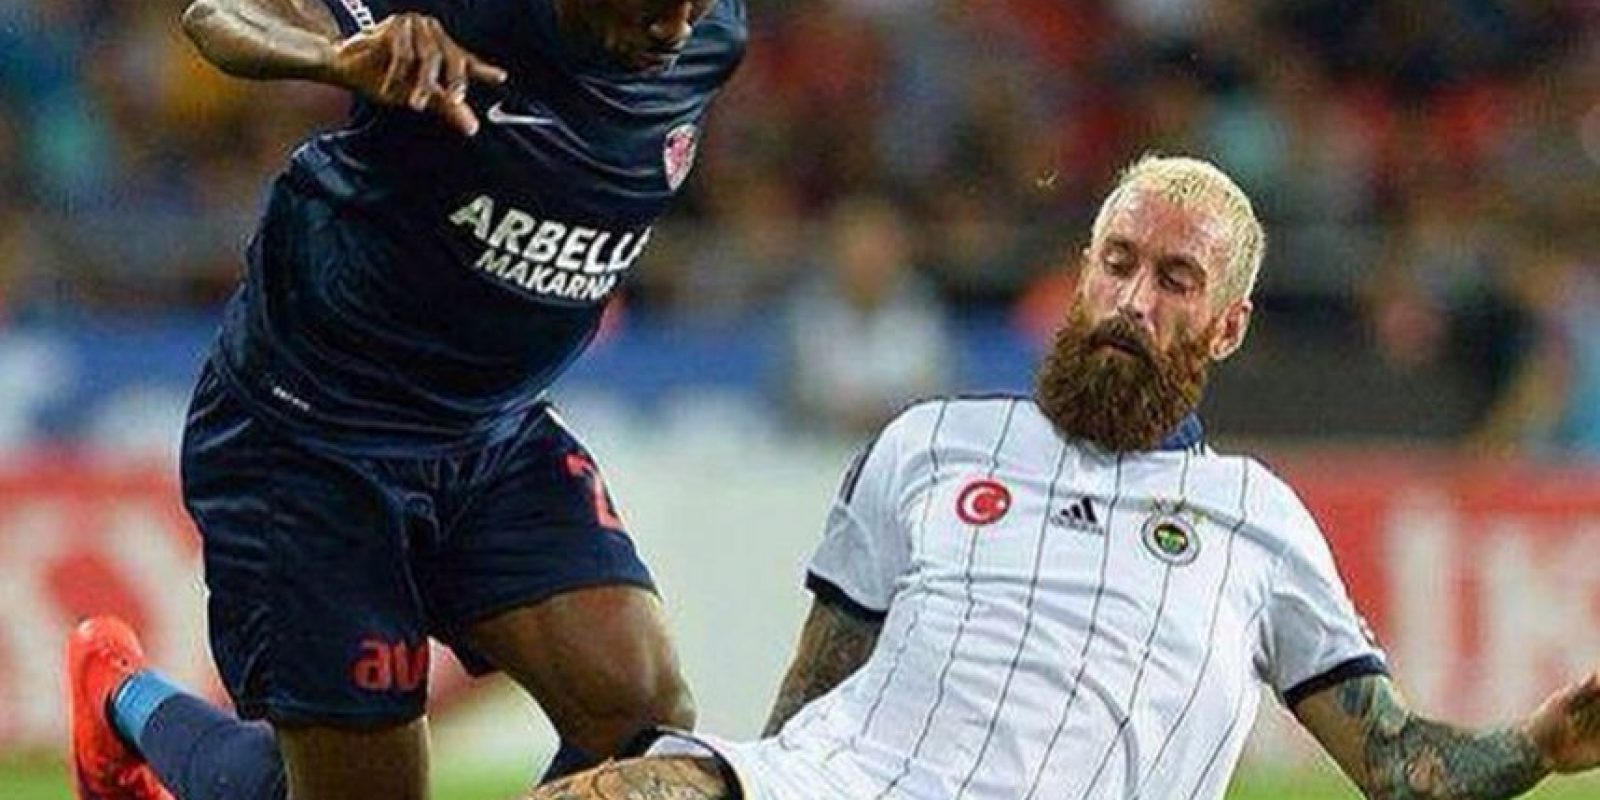 Foto: Vía /instagram.com/official_raul_meireles